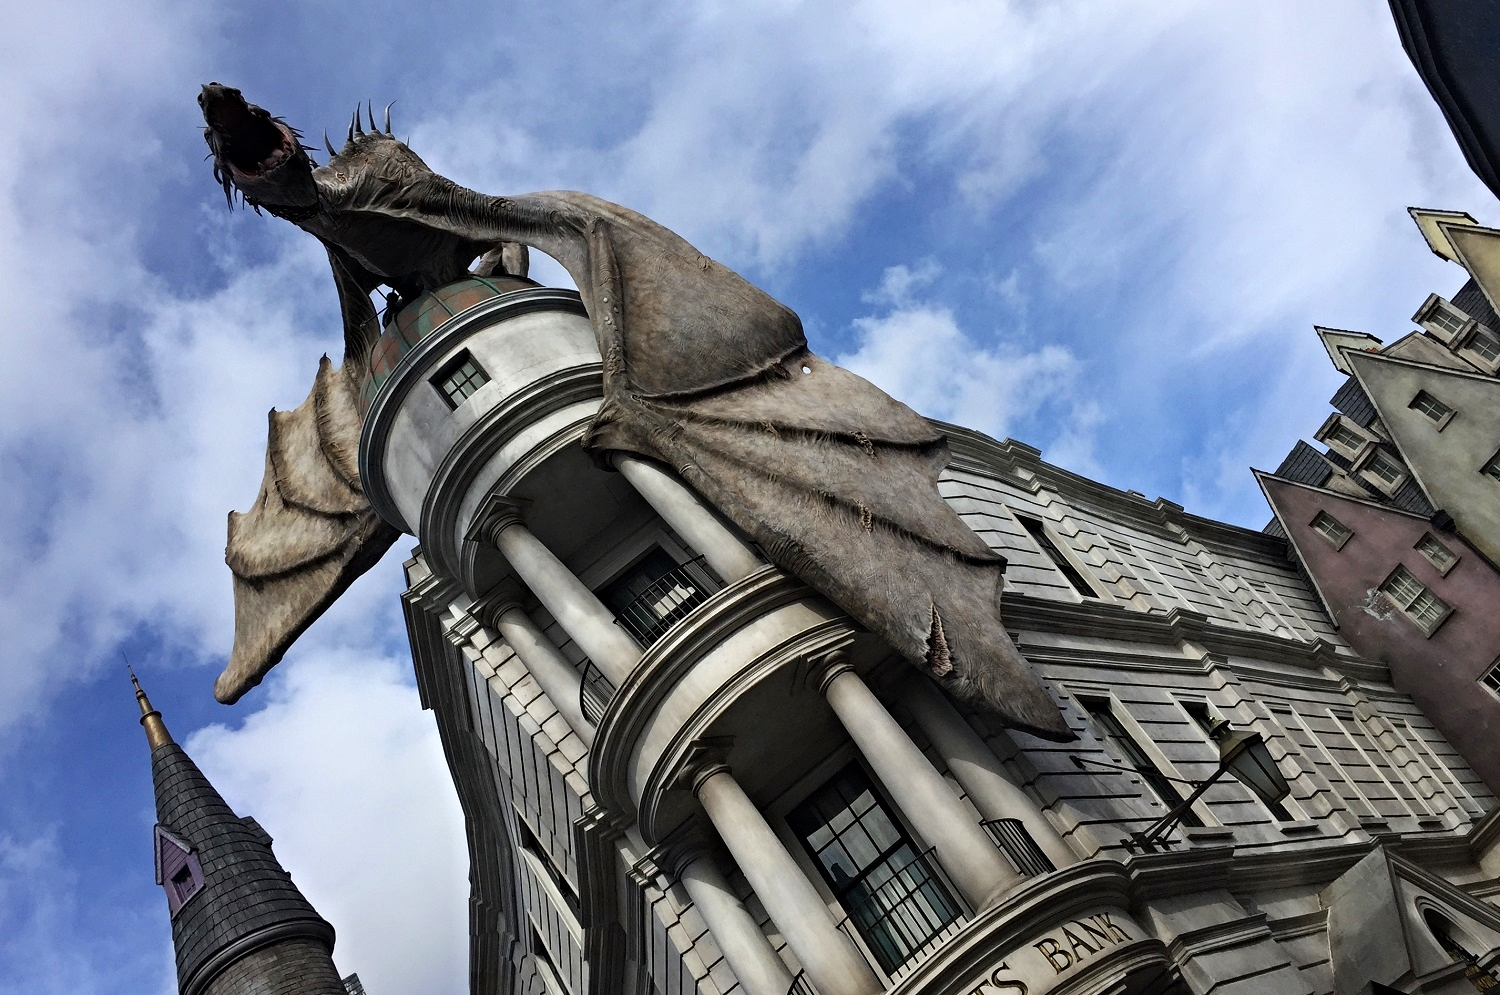 Learn about the Harry Potter and Escape From Gringotts ride inside Gringotts Bank in The Wizarding World of Harry Potter - Diagon Alley.